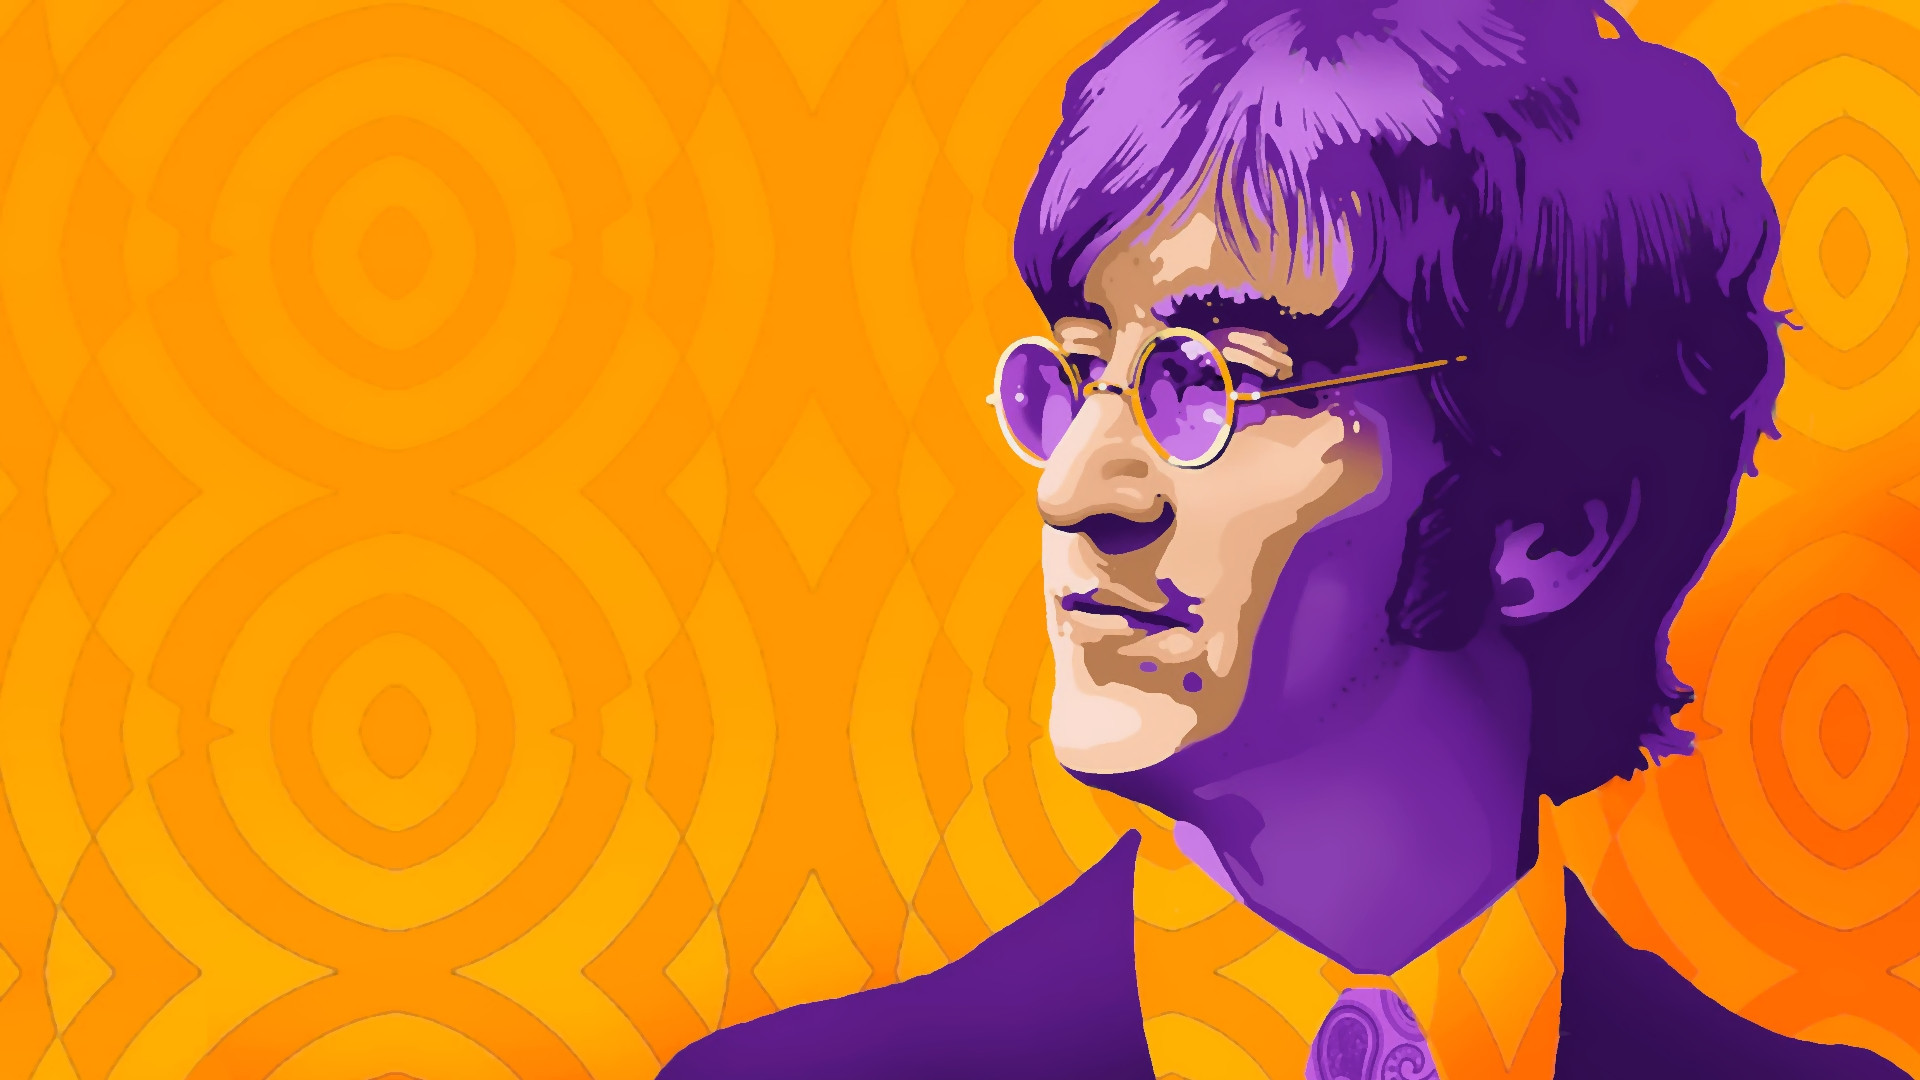 John Lennon Wallpaper